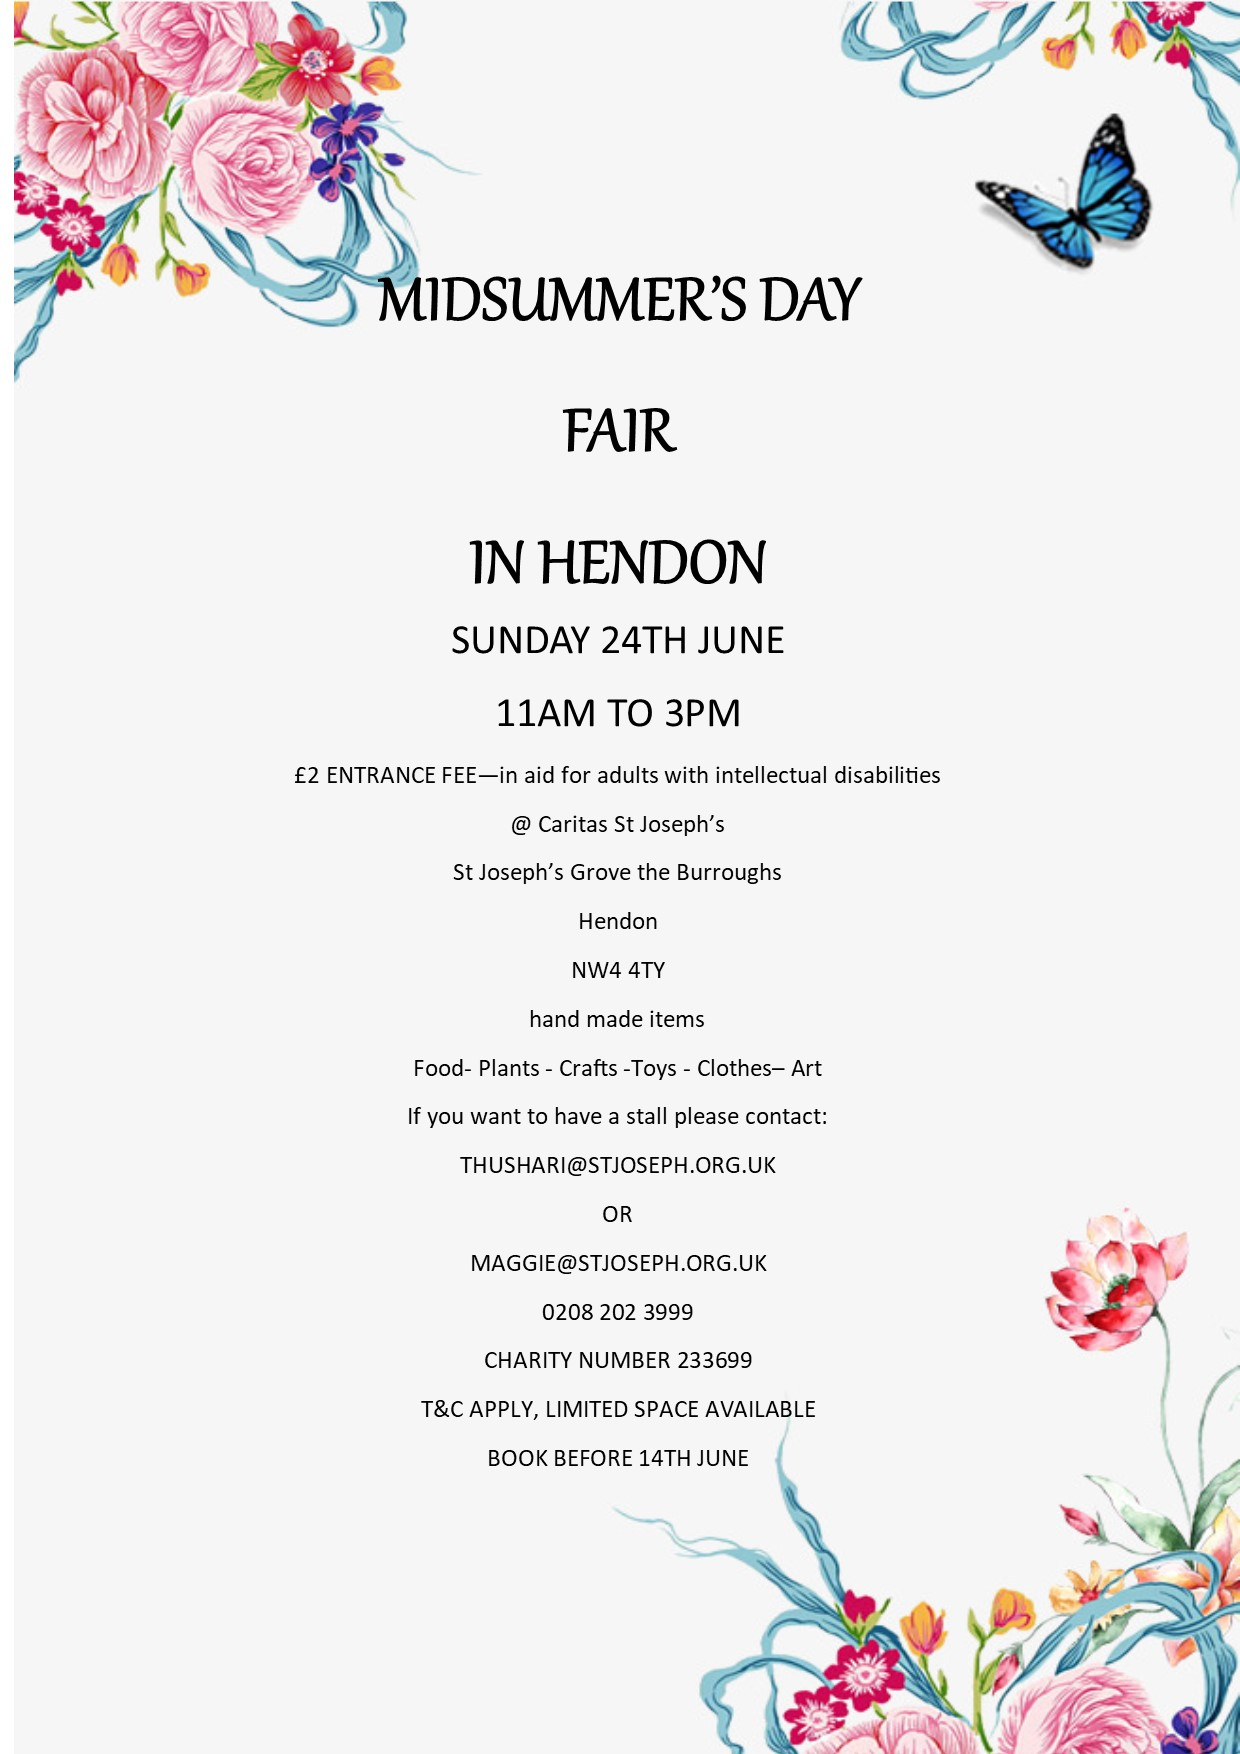 Midsummer's  Day Fair in Hendon